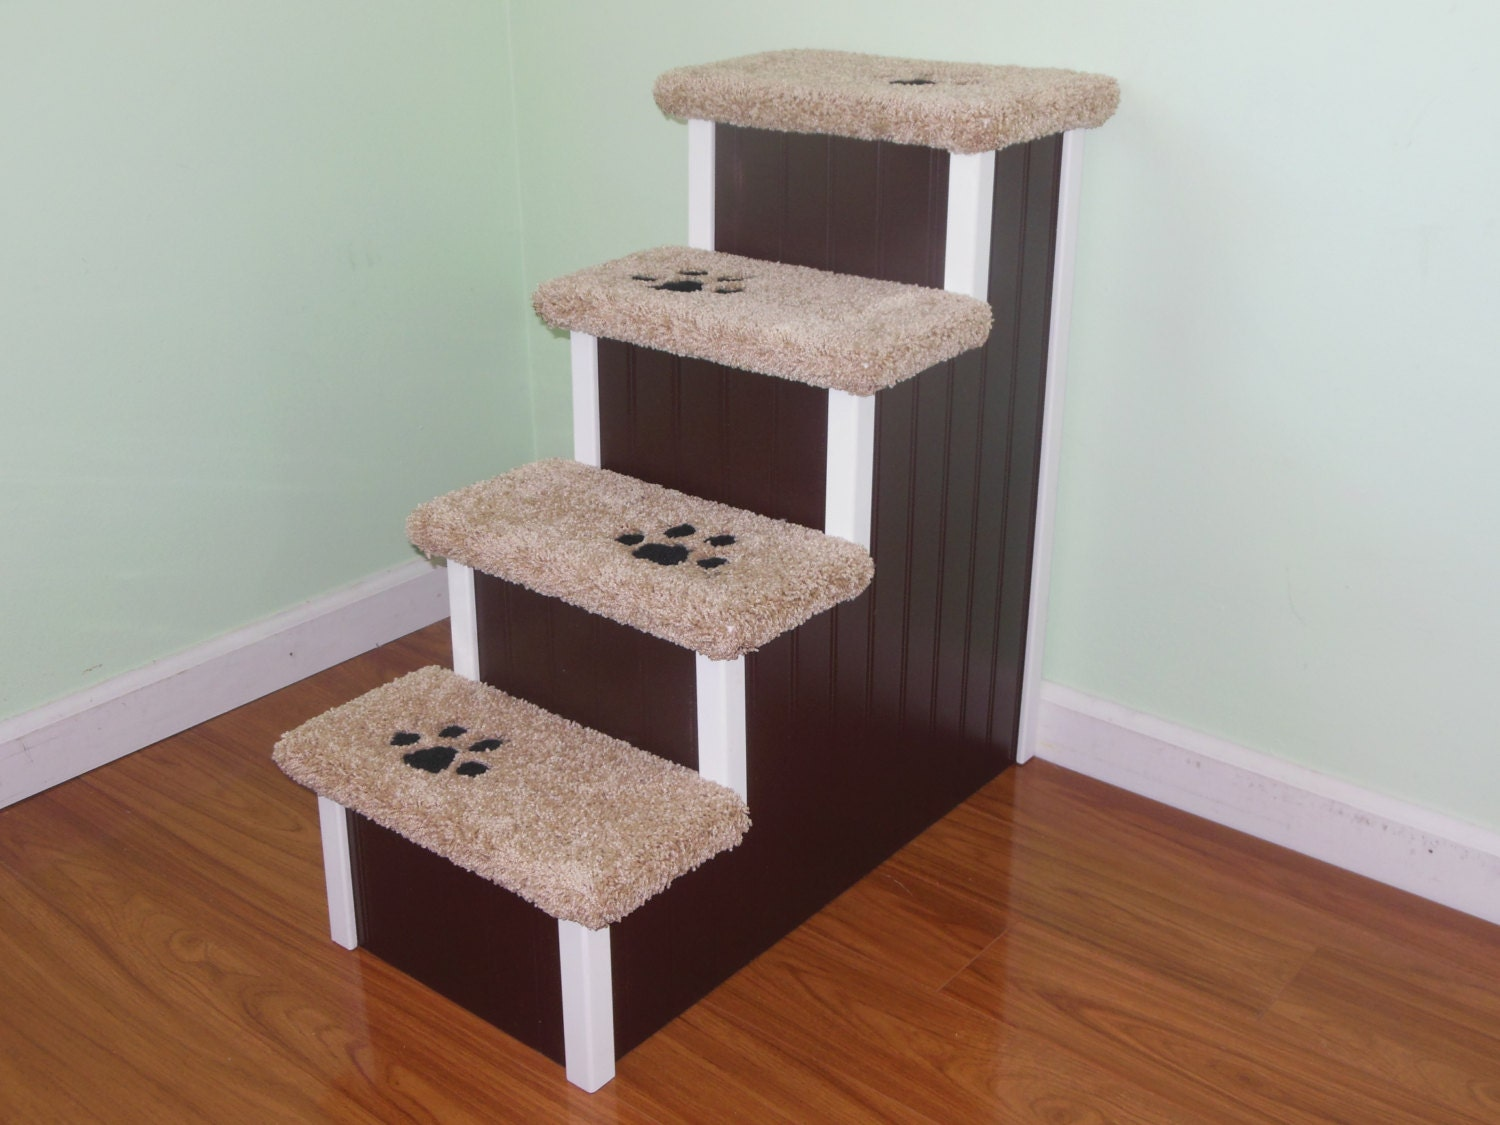 Pet Steps For Dogs, Dog Stairs, 30 High Puppy Stairs, Pet Furniture, Pet  Stairs, Dog Lovers, Small Dogs, Toy Dogs, Miniature Dogs, Handmade